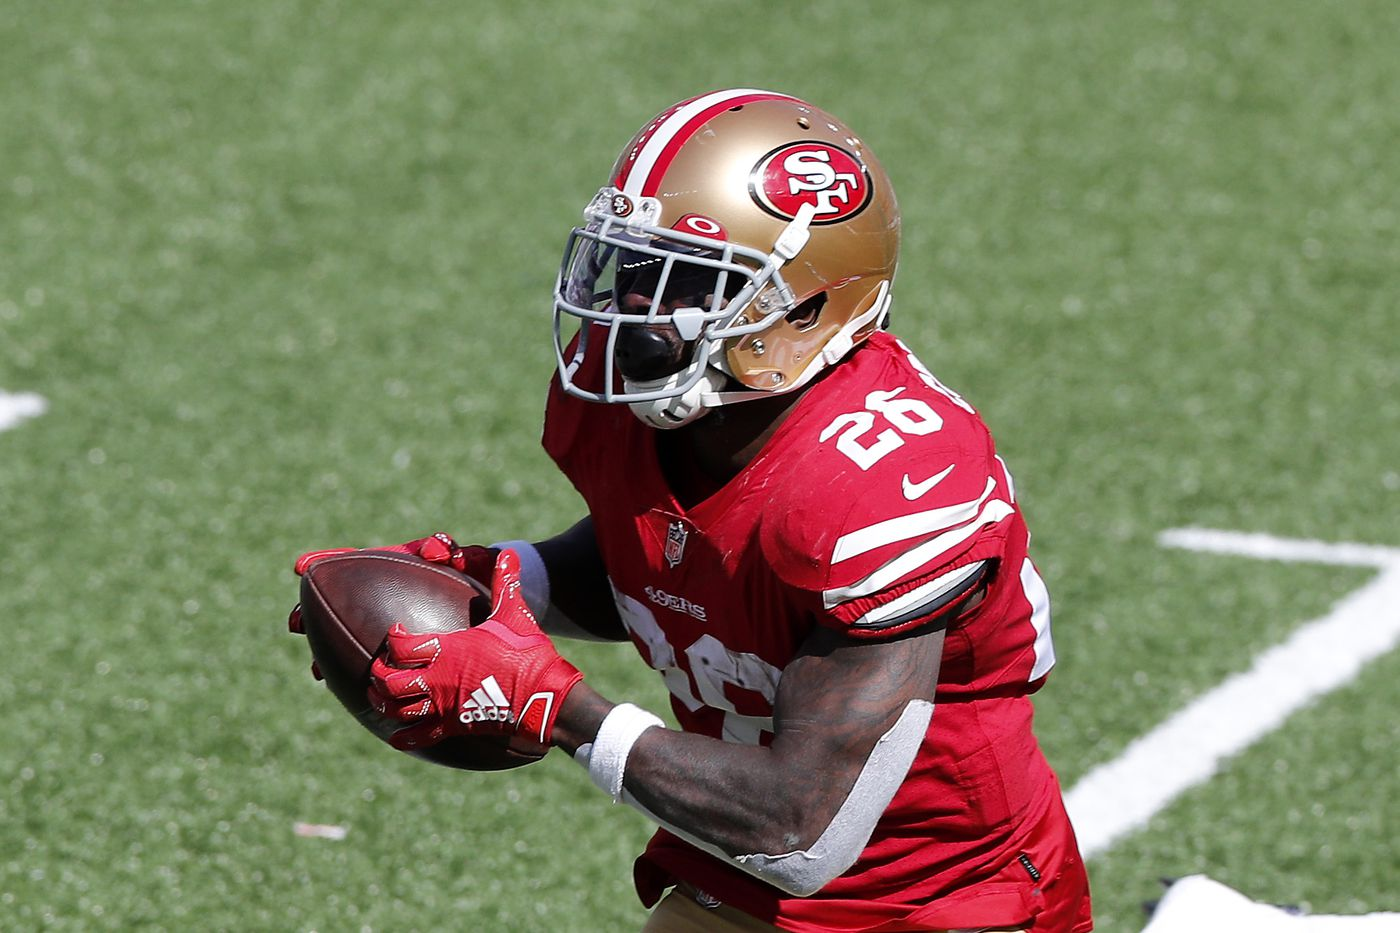 Former 49ers RB Tevin Coleman signs with the Jets on a one-year deal worth  up to $2 million - Niners Nation